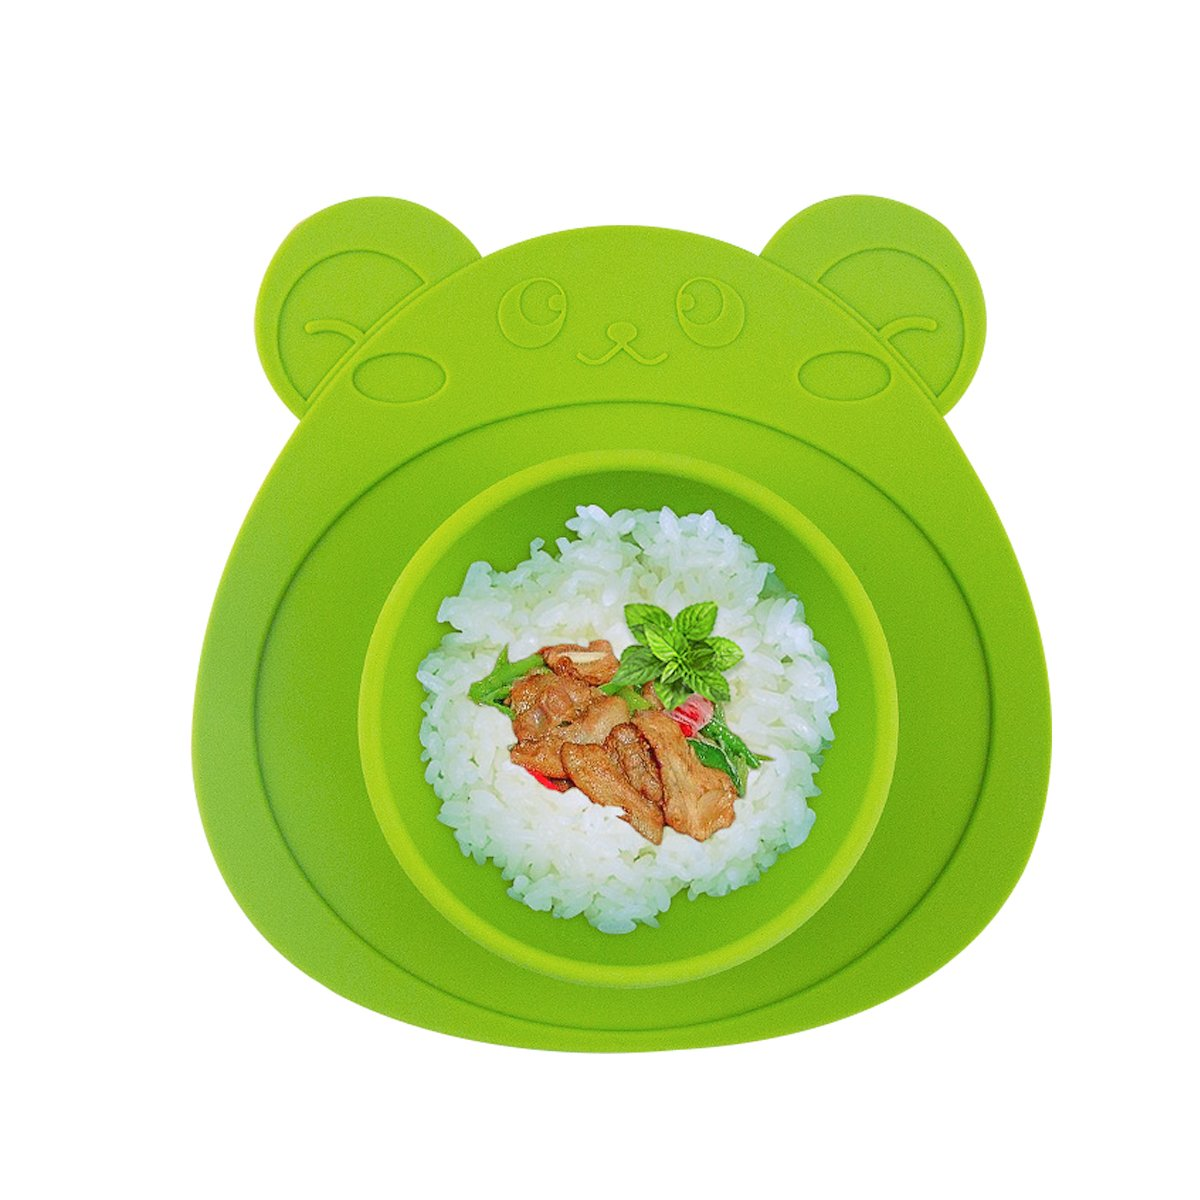 URSMART Toddler Plates, Suction Plates,One-Piece Baby Plate for Babies Toddlers and Kids, Portable BPA-Free FDA Approved Strong Suction Plates for Toddlers, Dishwasher and Microwave Safe Silicone